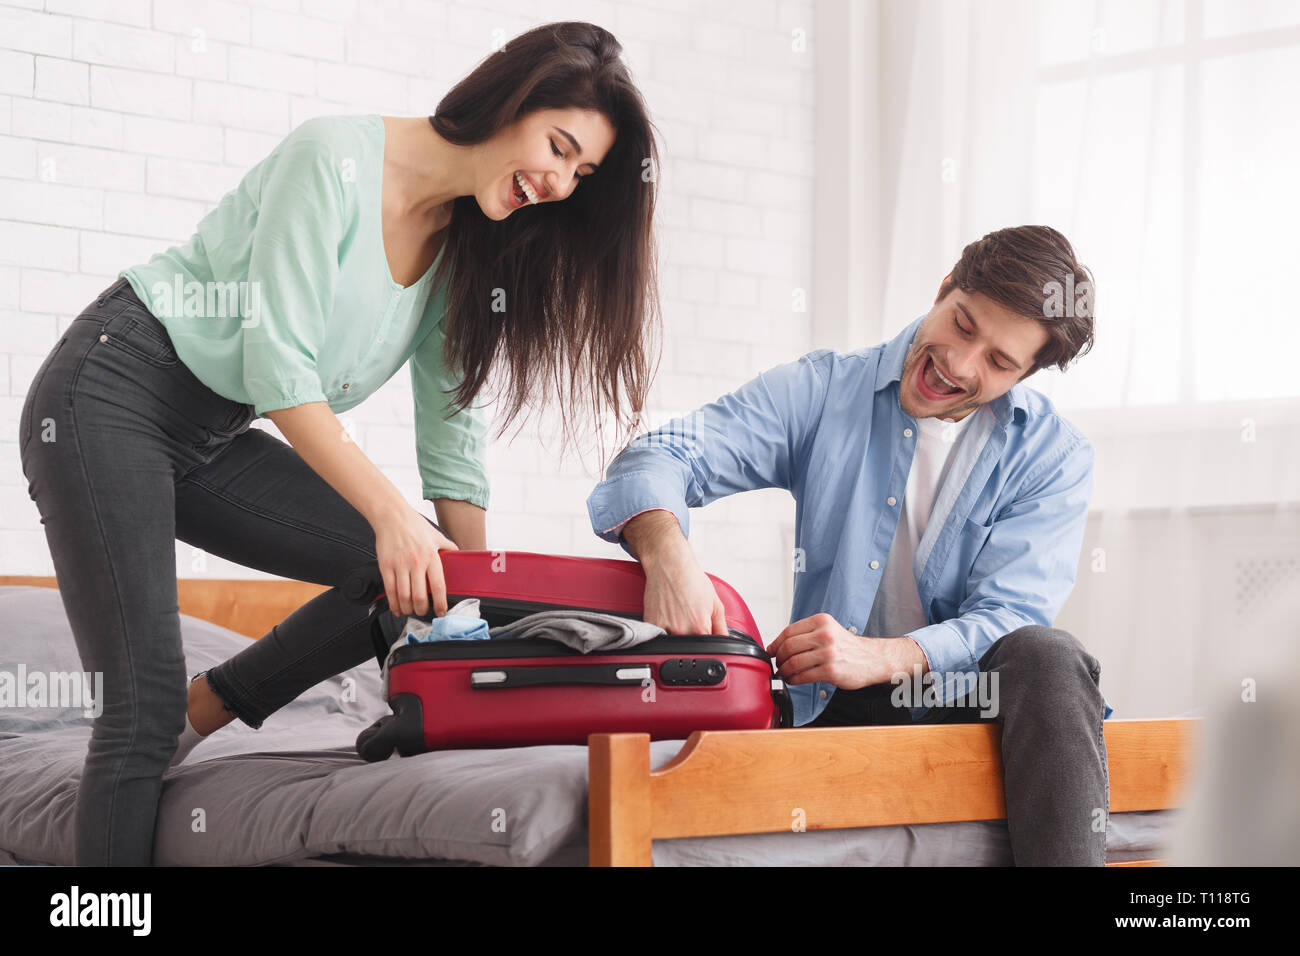 Couple trying to close full suitcase in bedroom - Stock Image